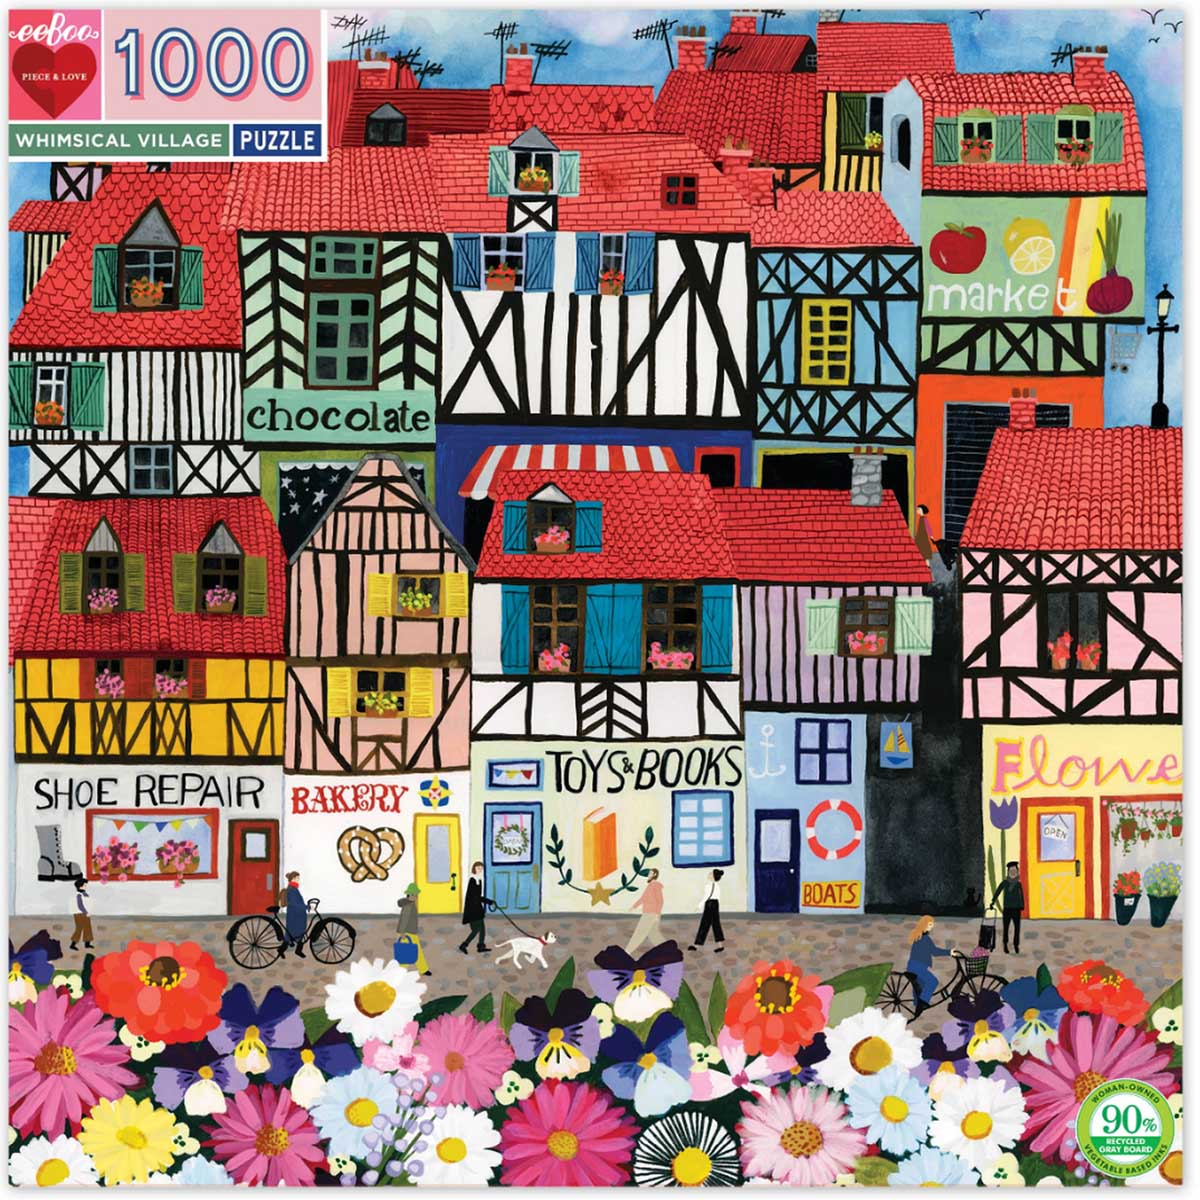 Whimsical Village Street Scene Jigsaw Puzzle